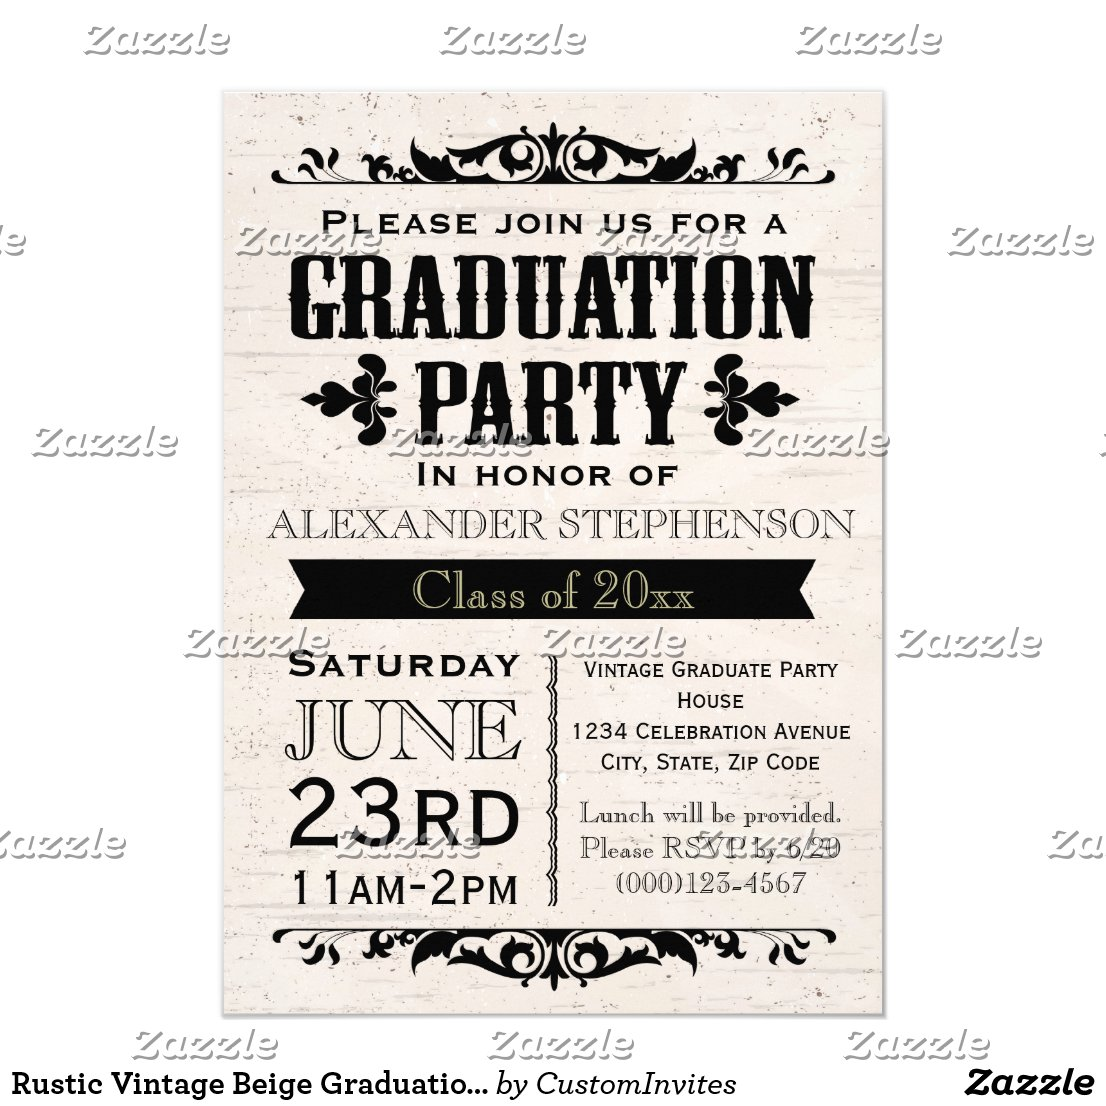 Rustic Vintage Beige Graduation Party Invitation